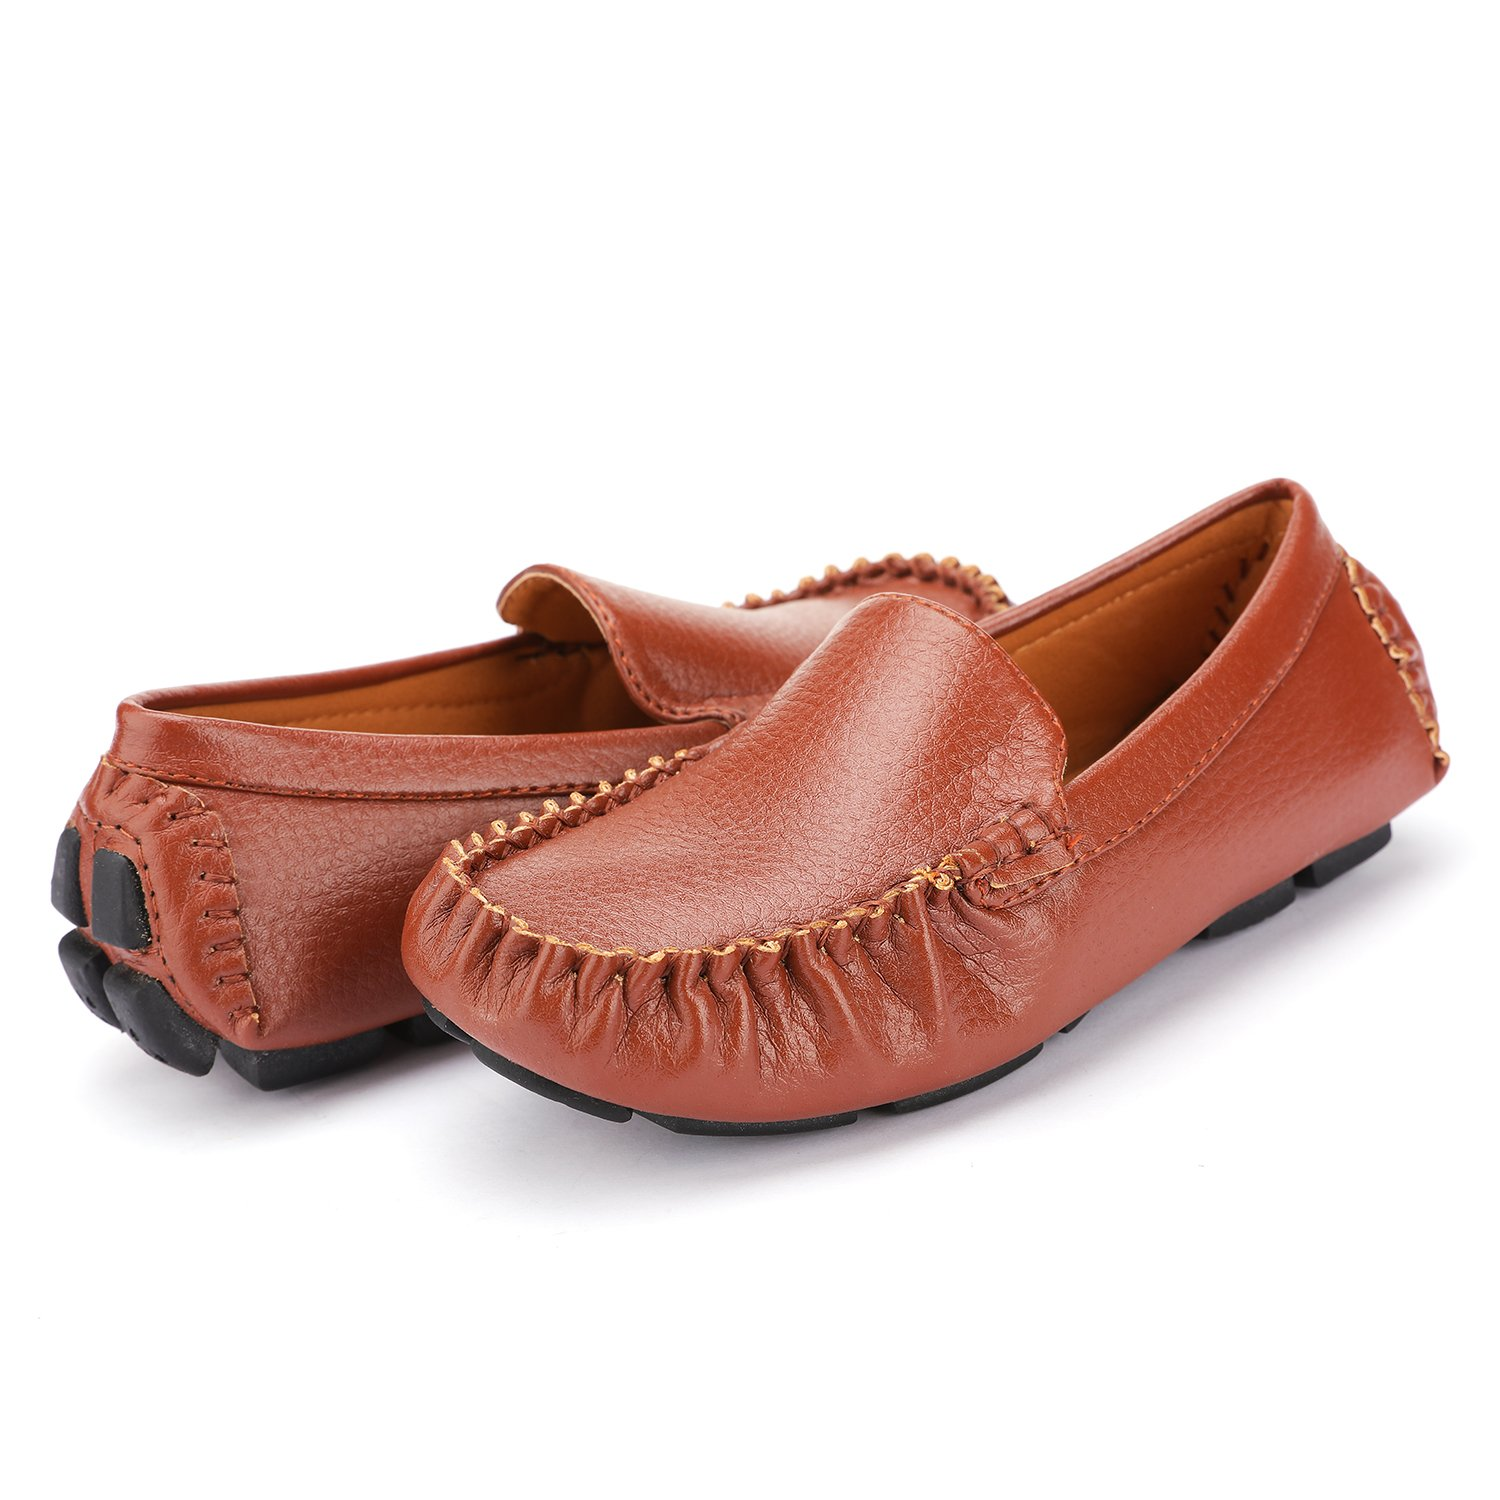 UBELLA Boys Casual Synthetic Leather Loafers Slip On Boat Dress Shoes Flat Toddler//Little Kid